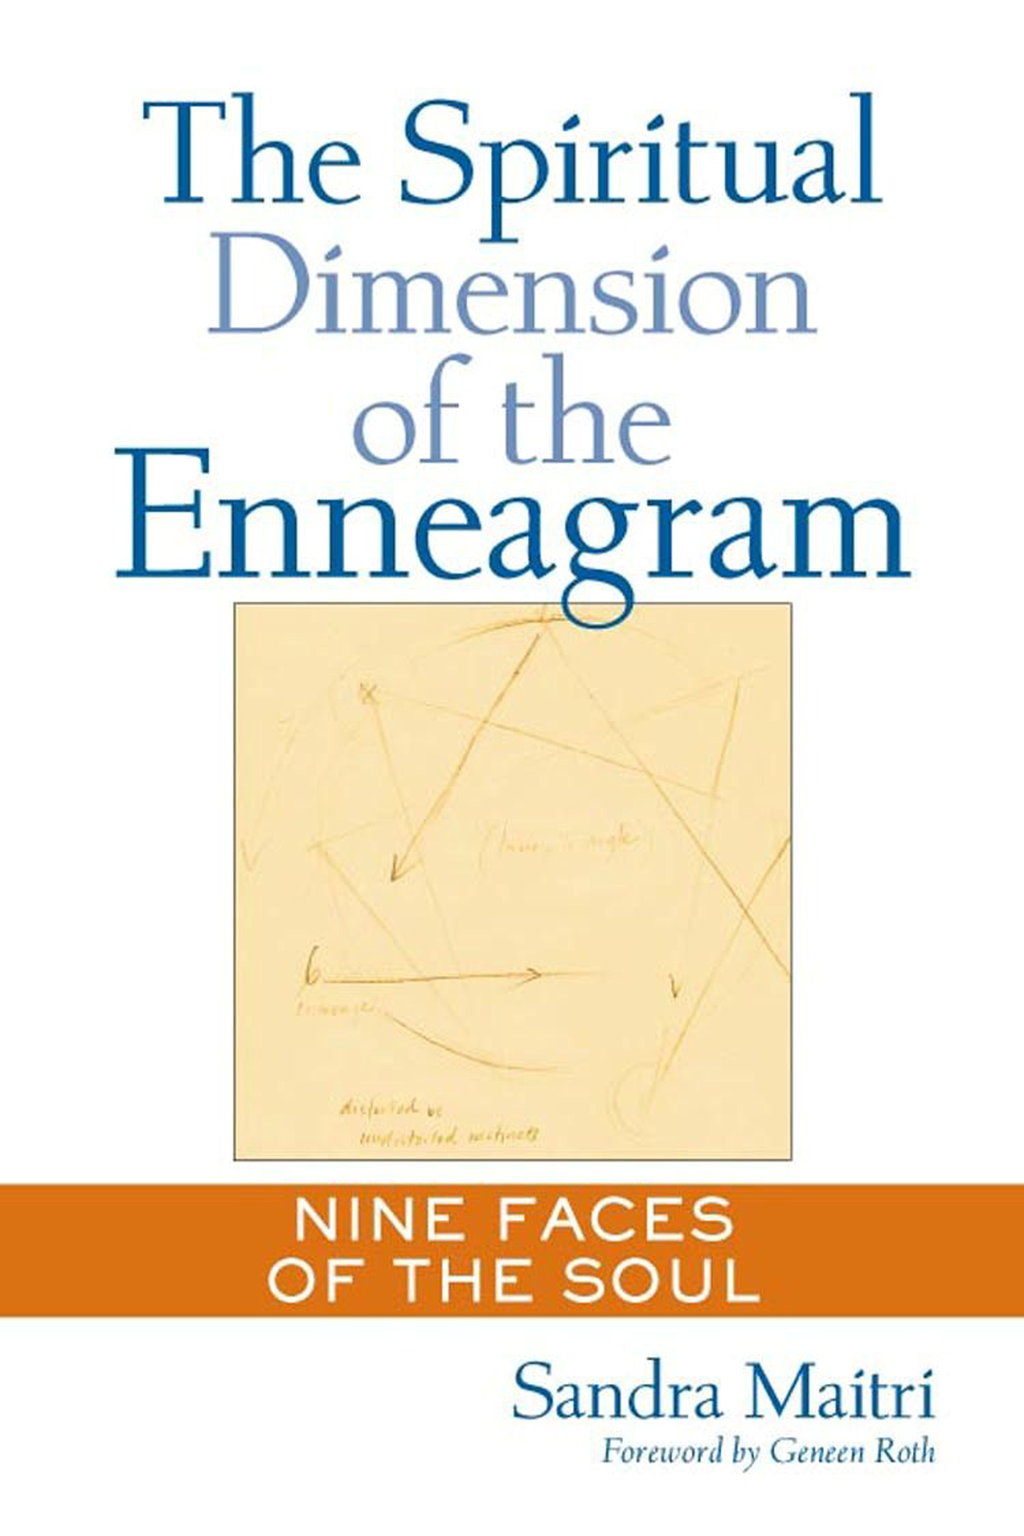 The Spiritual Dimension of the Enneagram: Nine Faces of the Soul By: Sandra Maitri